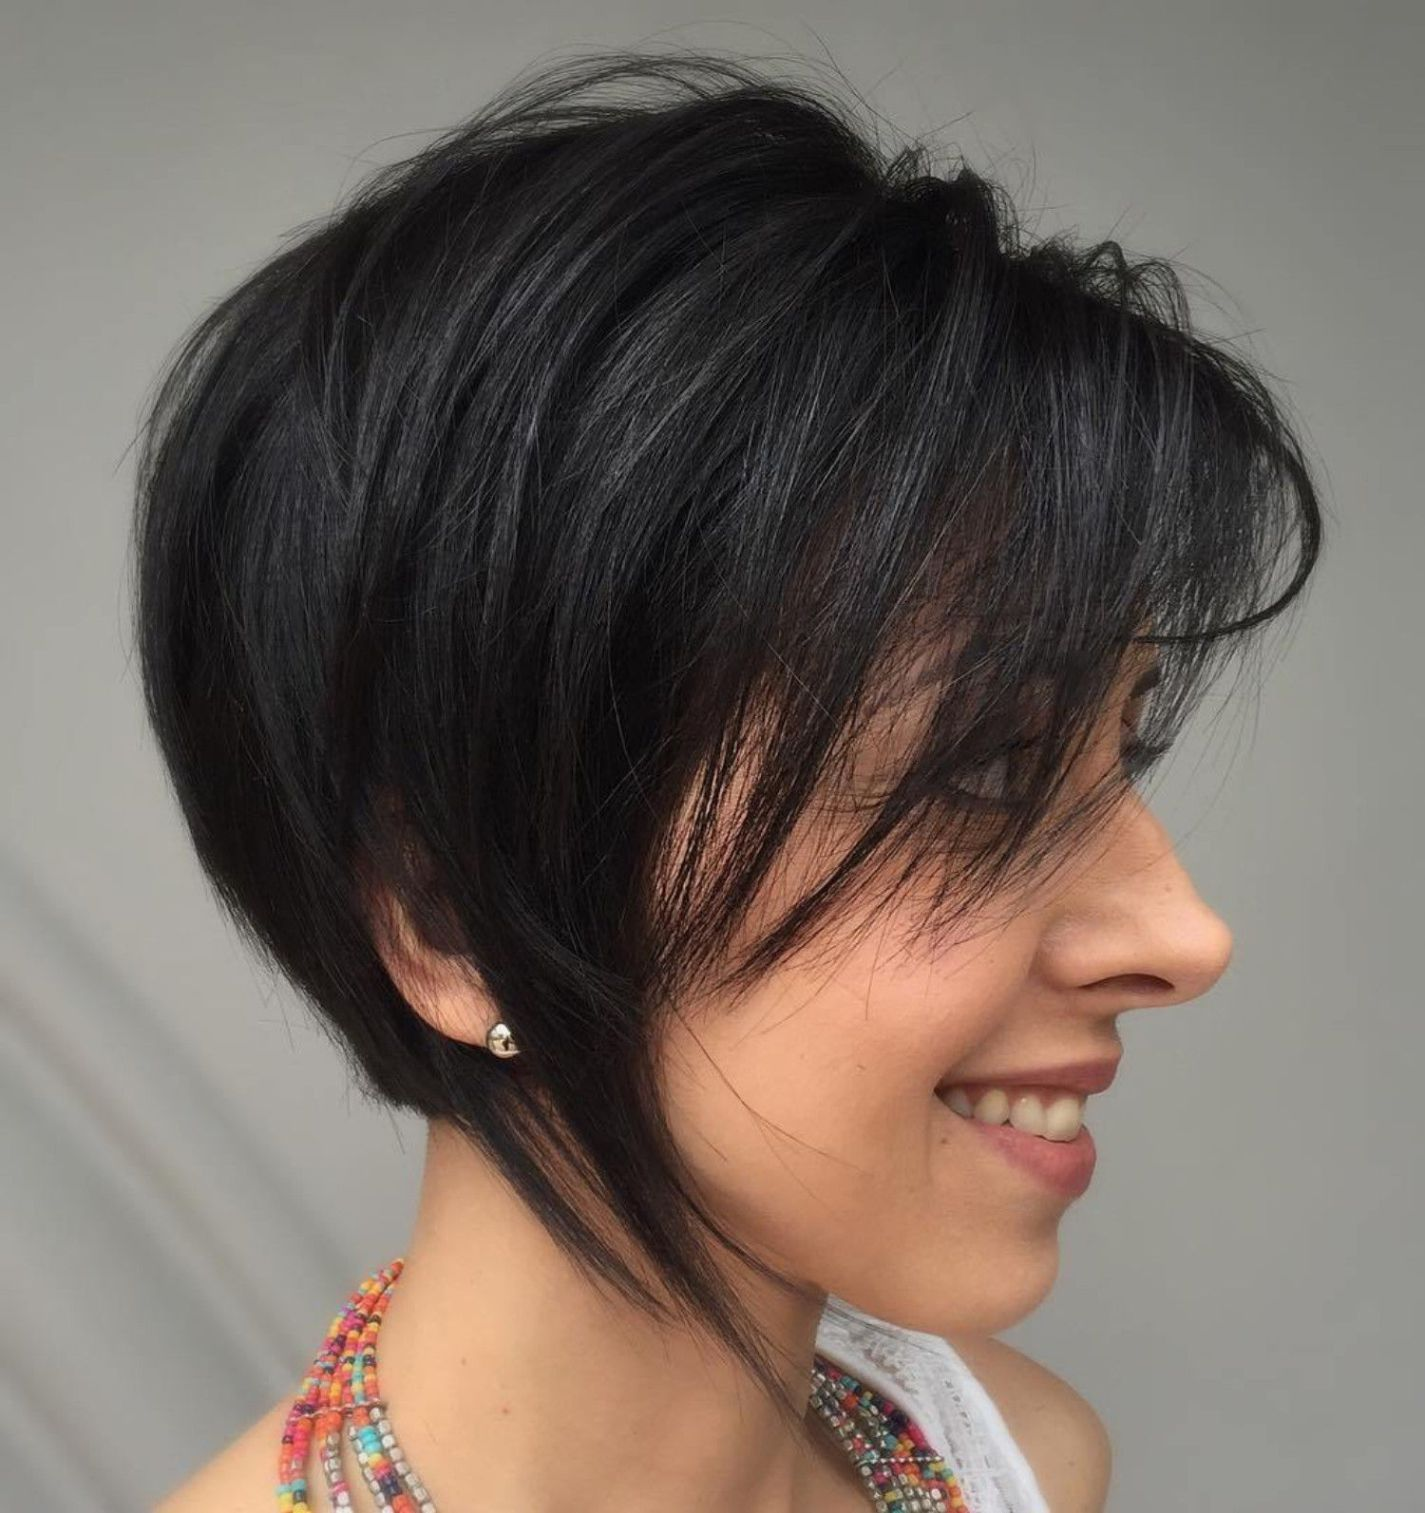 70 Cute And Easy To Style Short Layered Hairstyles Short Hair With Layers Layered Hair Layered Bob Hairstyles